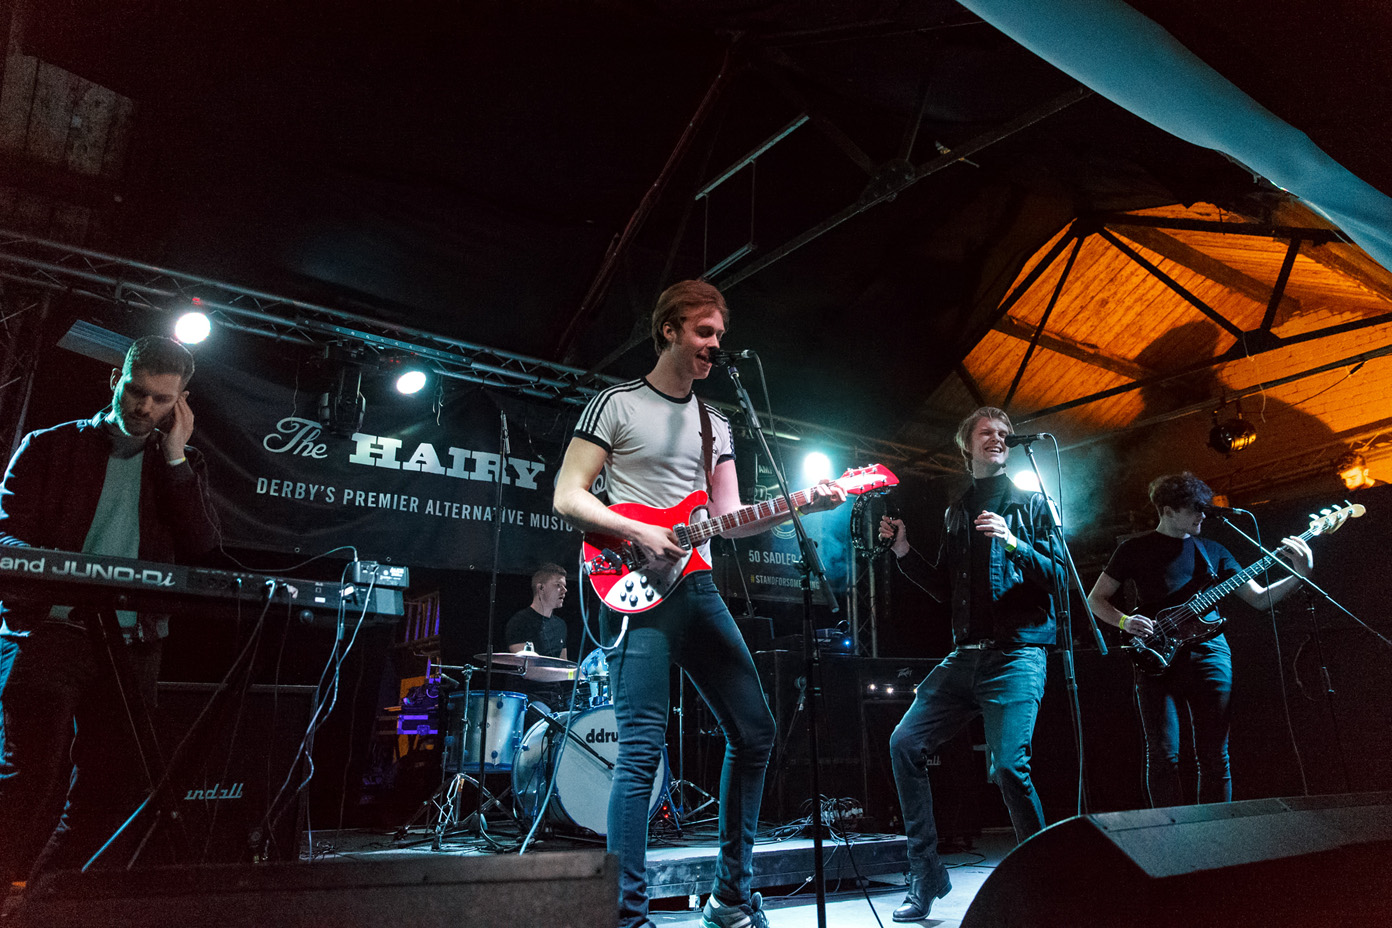 The Modern Strangers on stage at The Hairy Dog during 2Q Festival 2017. Photo: Katy Blackwood